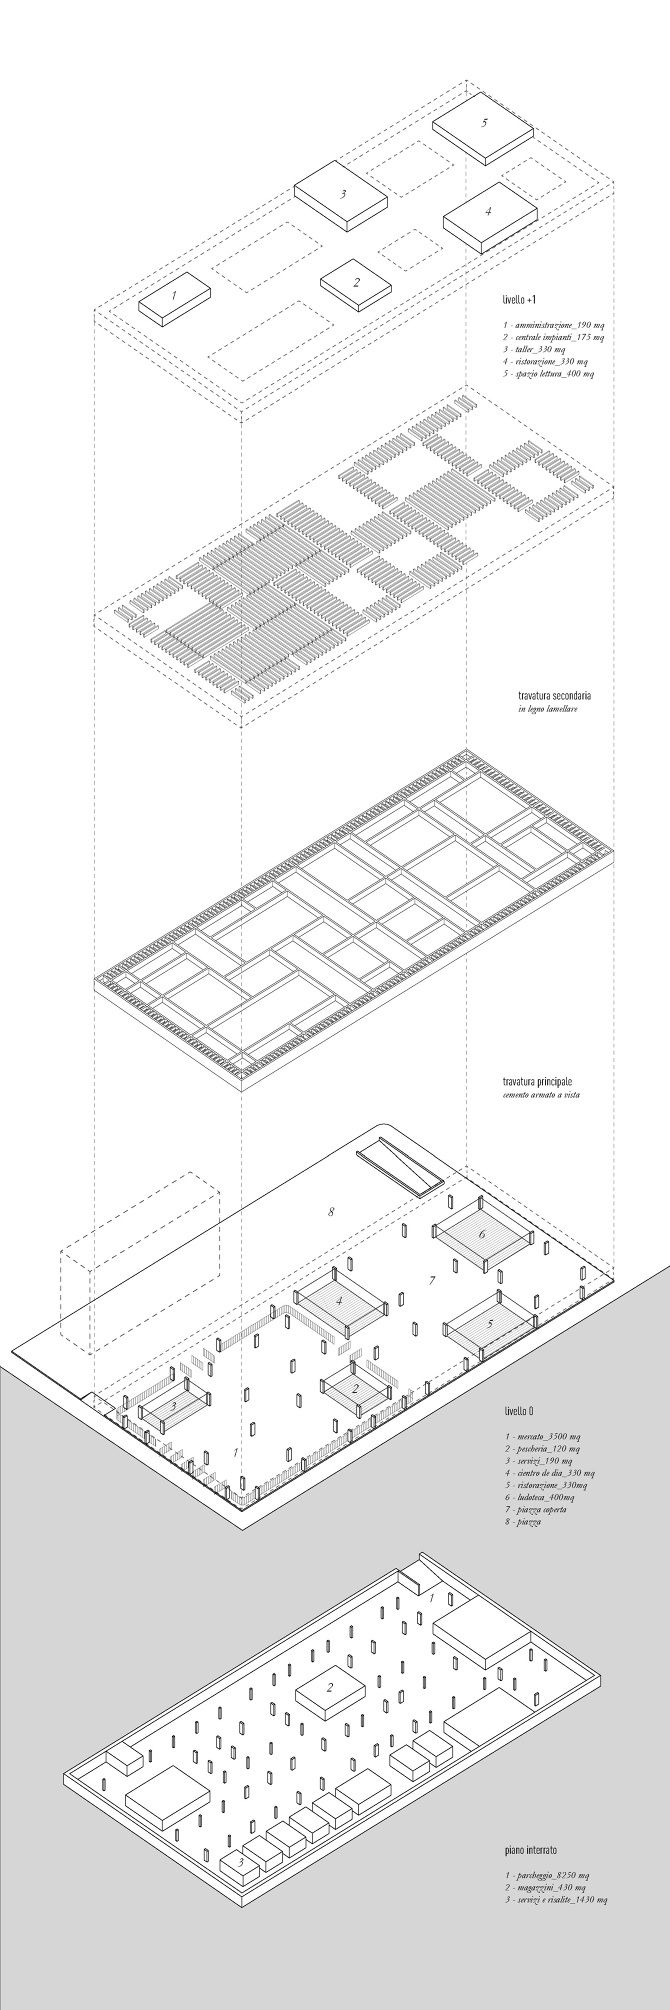 670x2010 53 Best Axonometric Projection Images On Contemporary